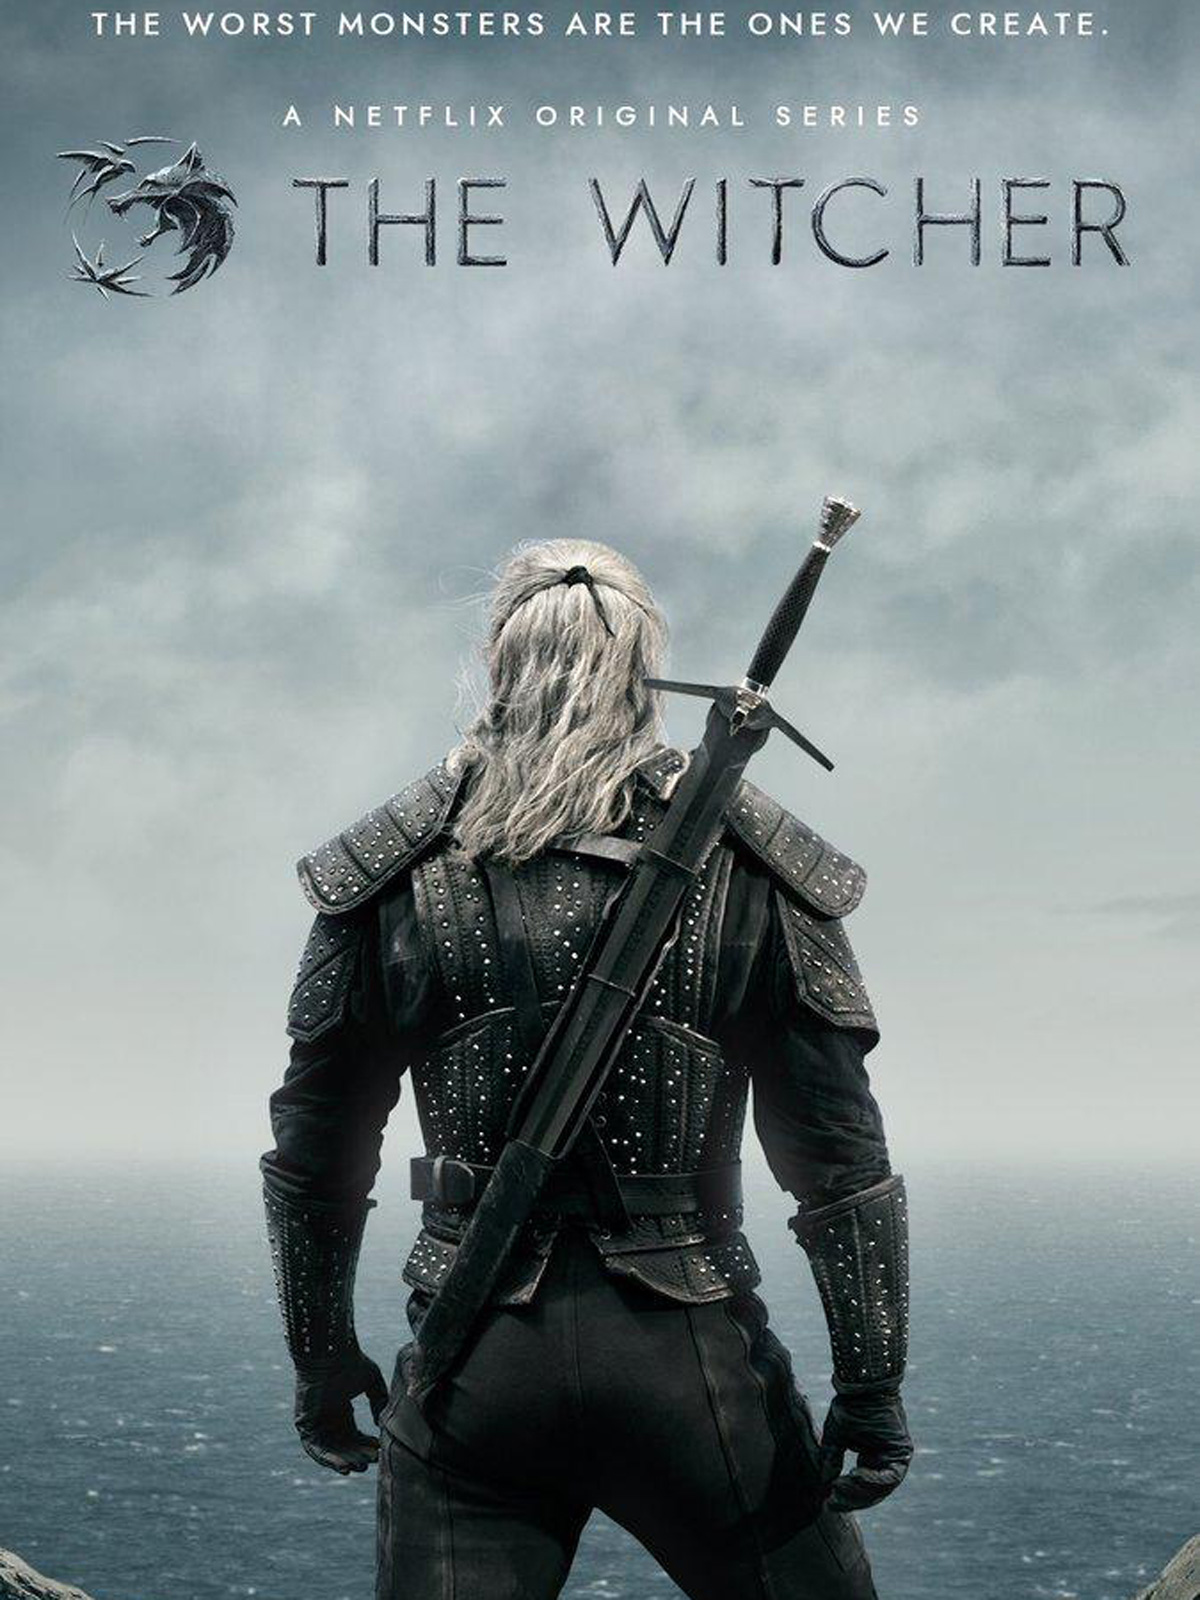 45 - The Witcher